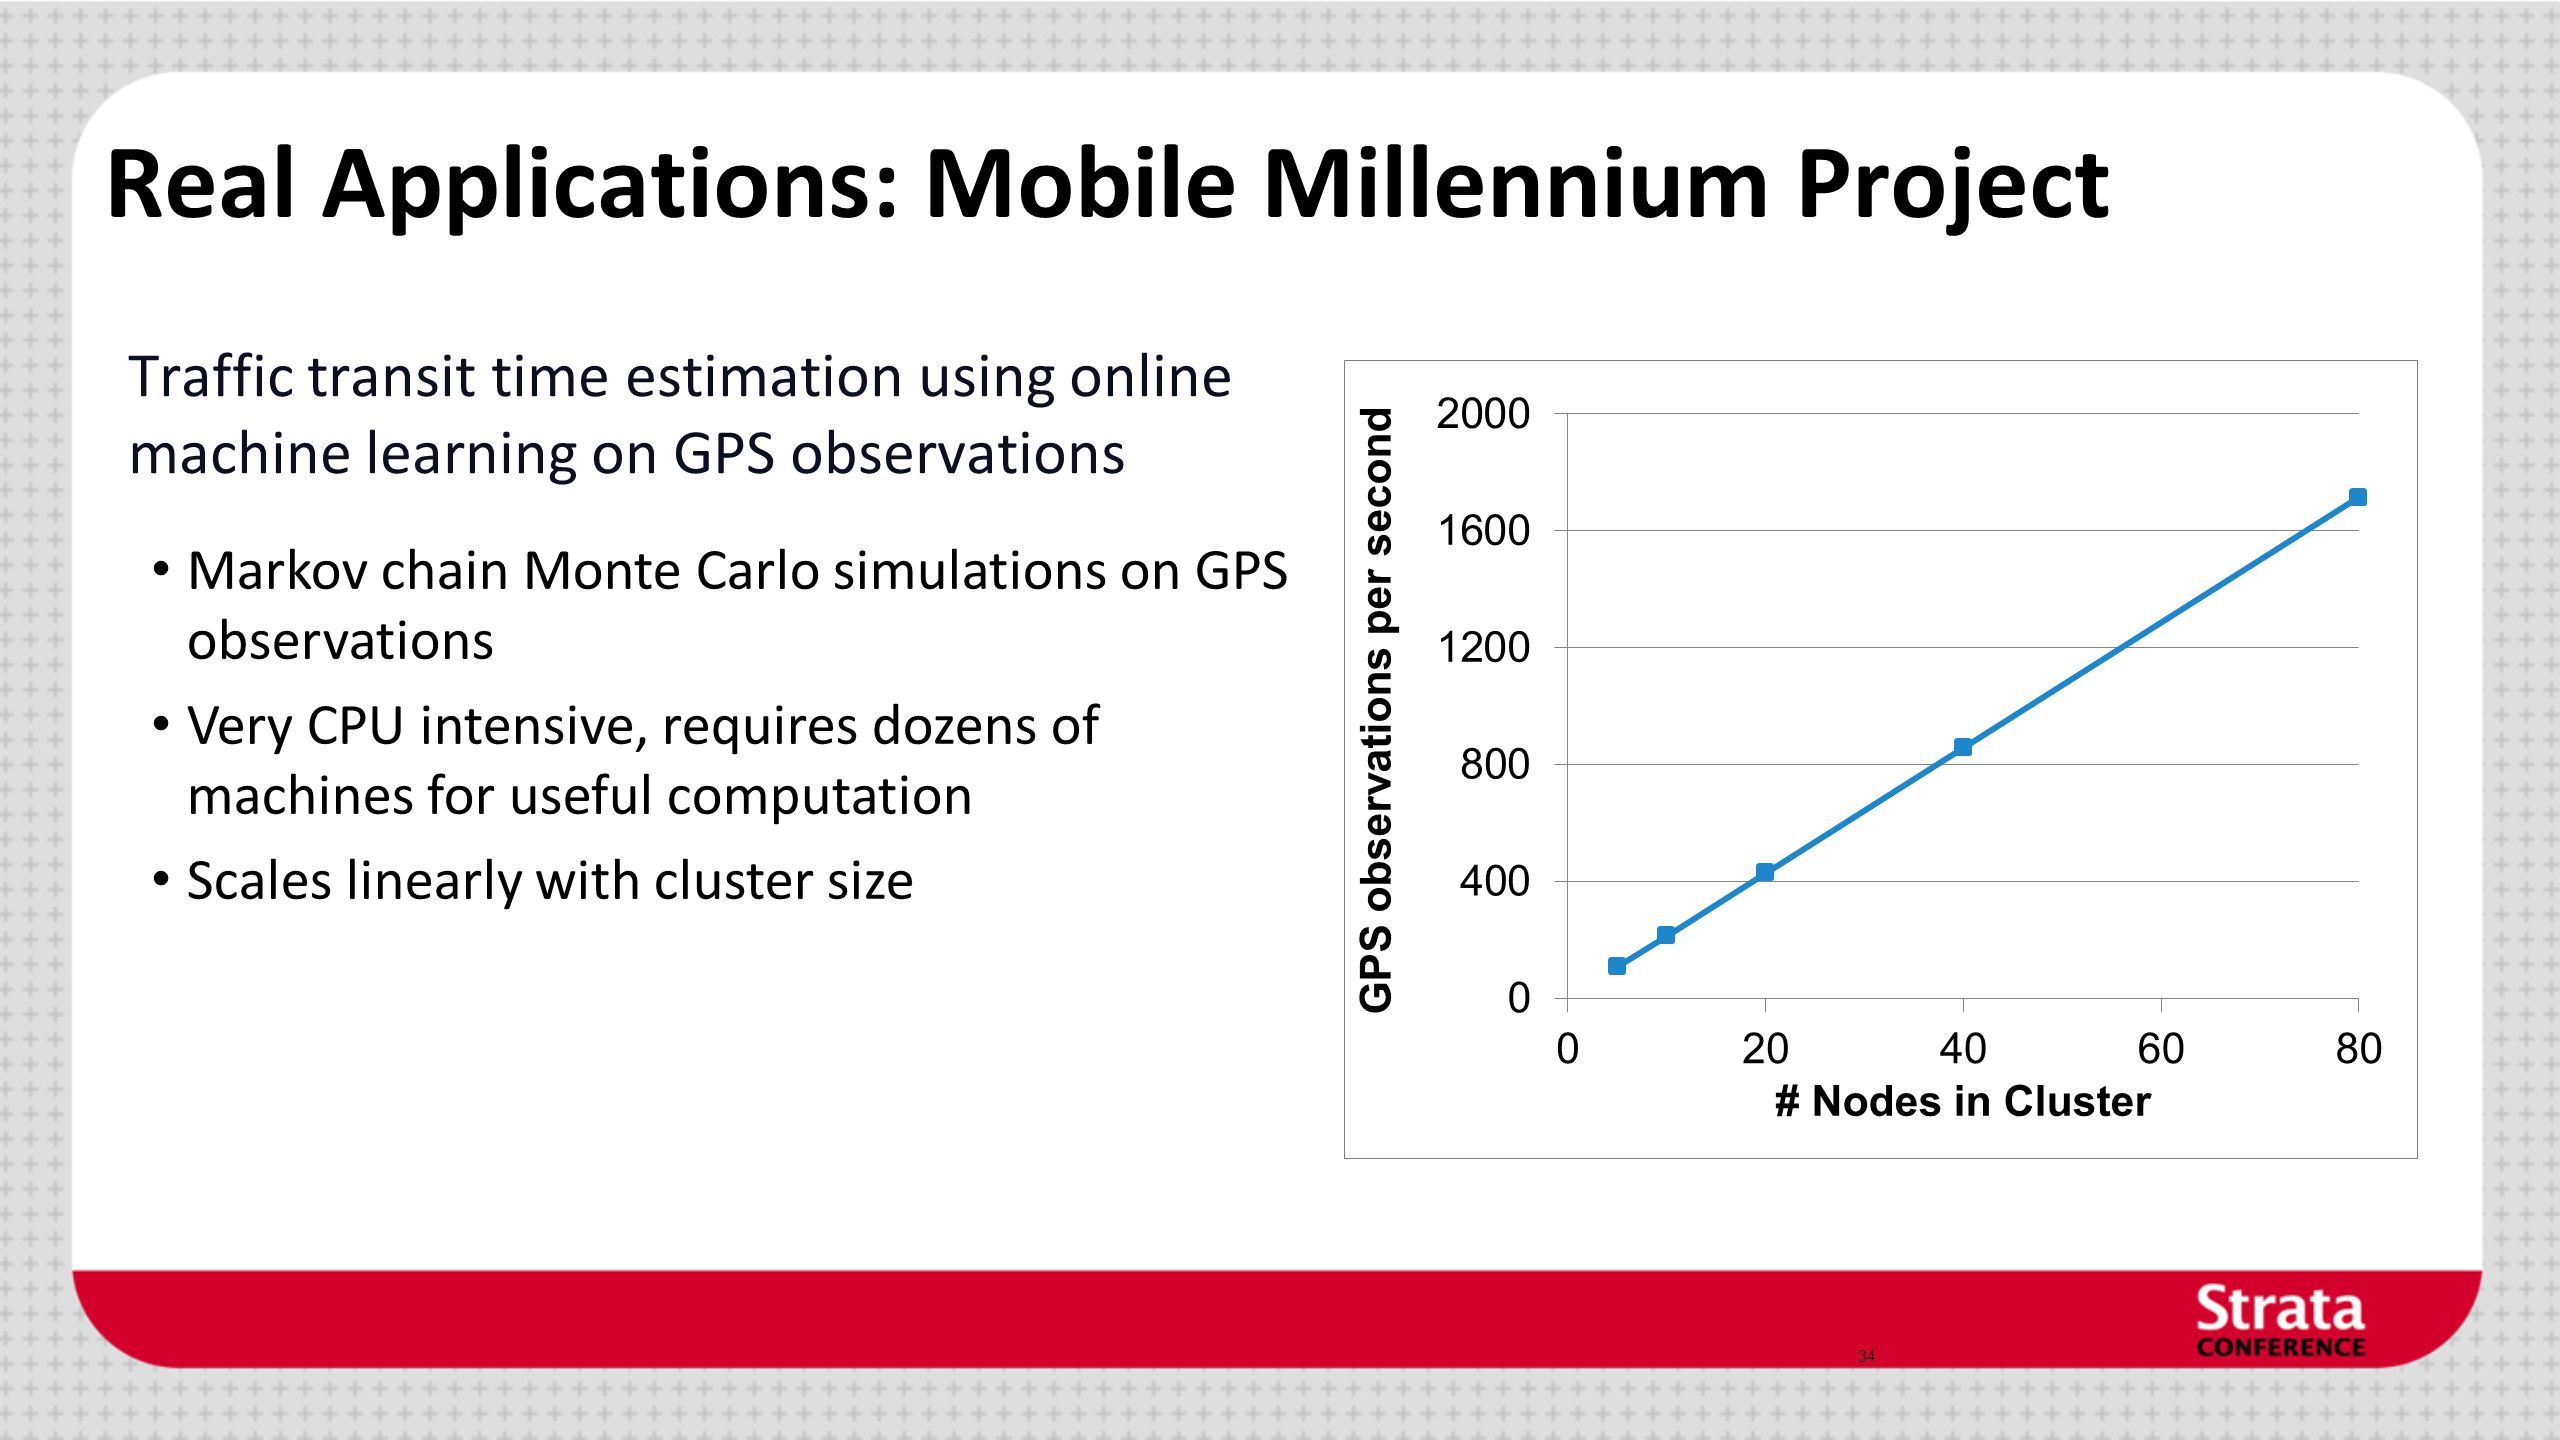 Real Applications: Mobile Millennium Project